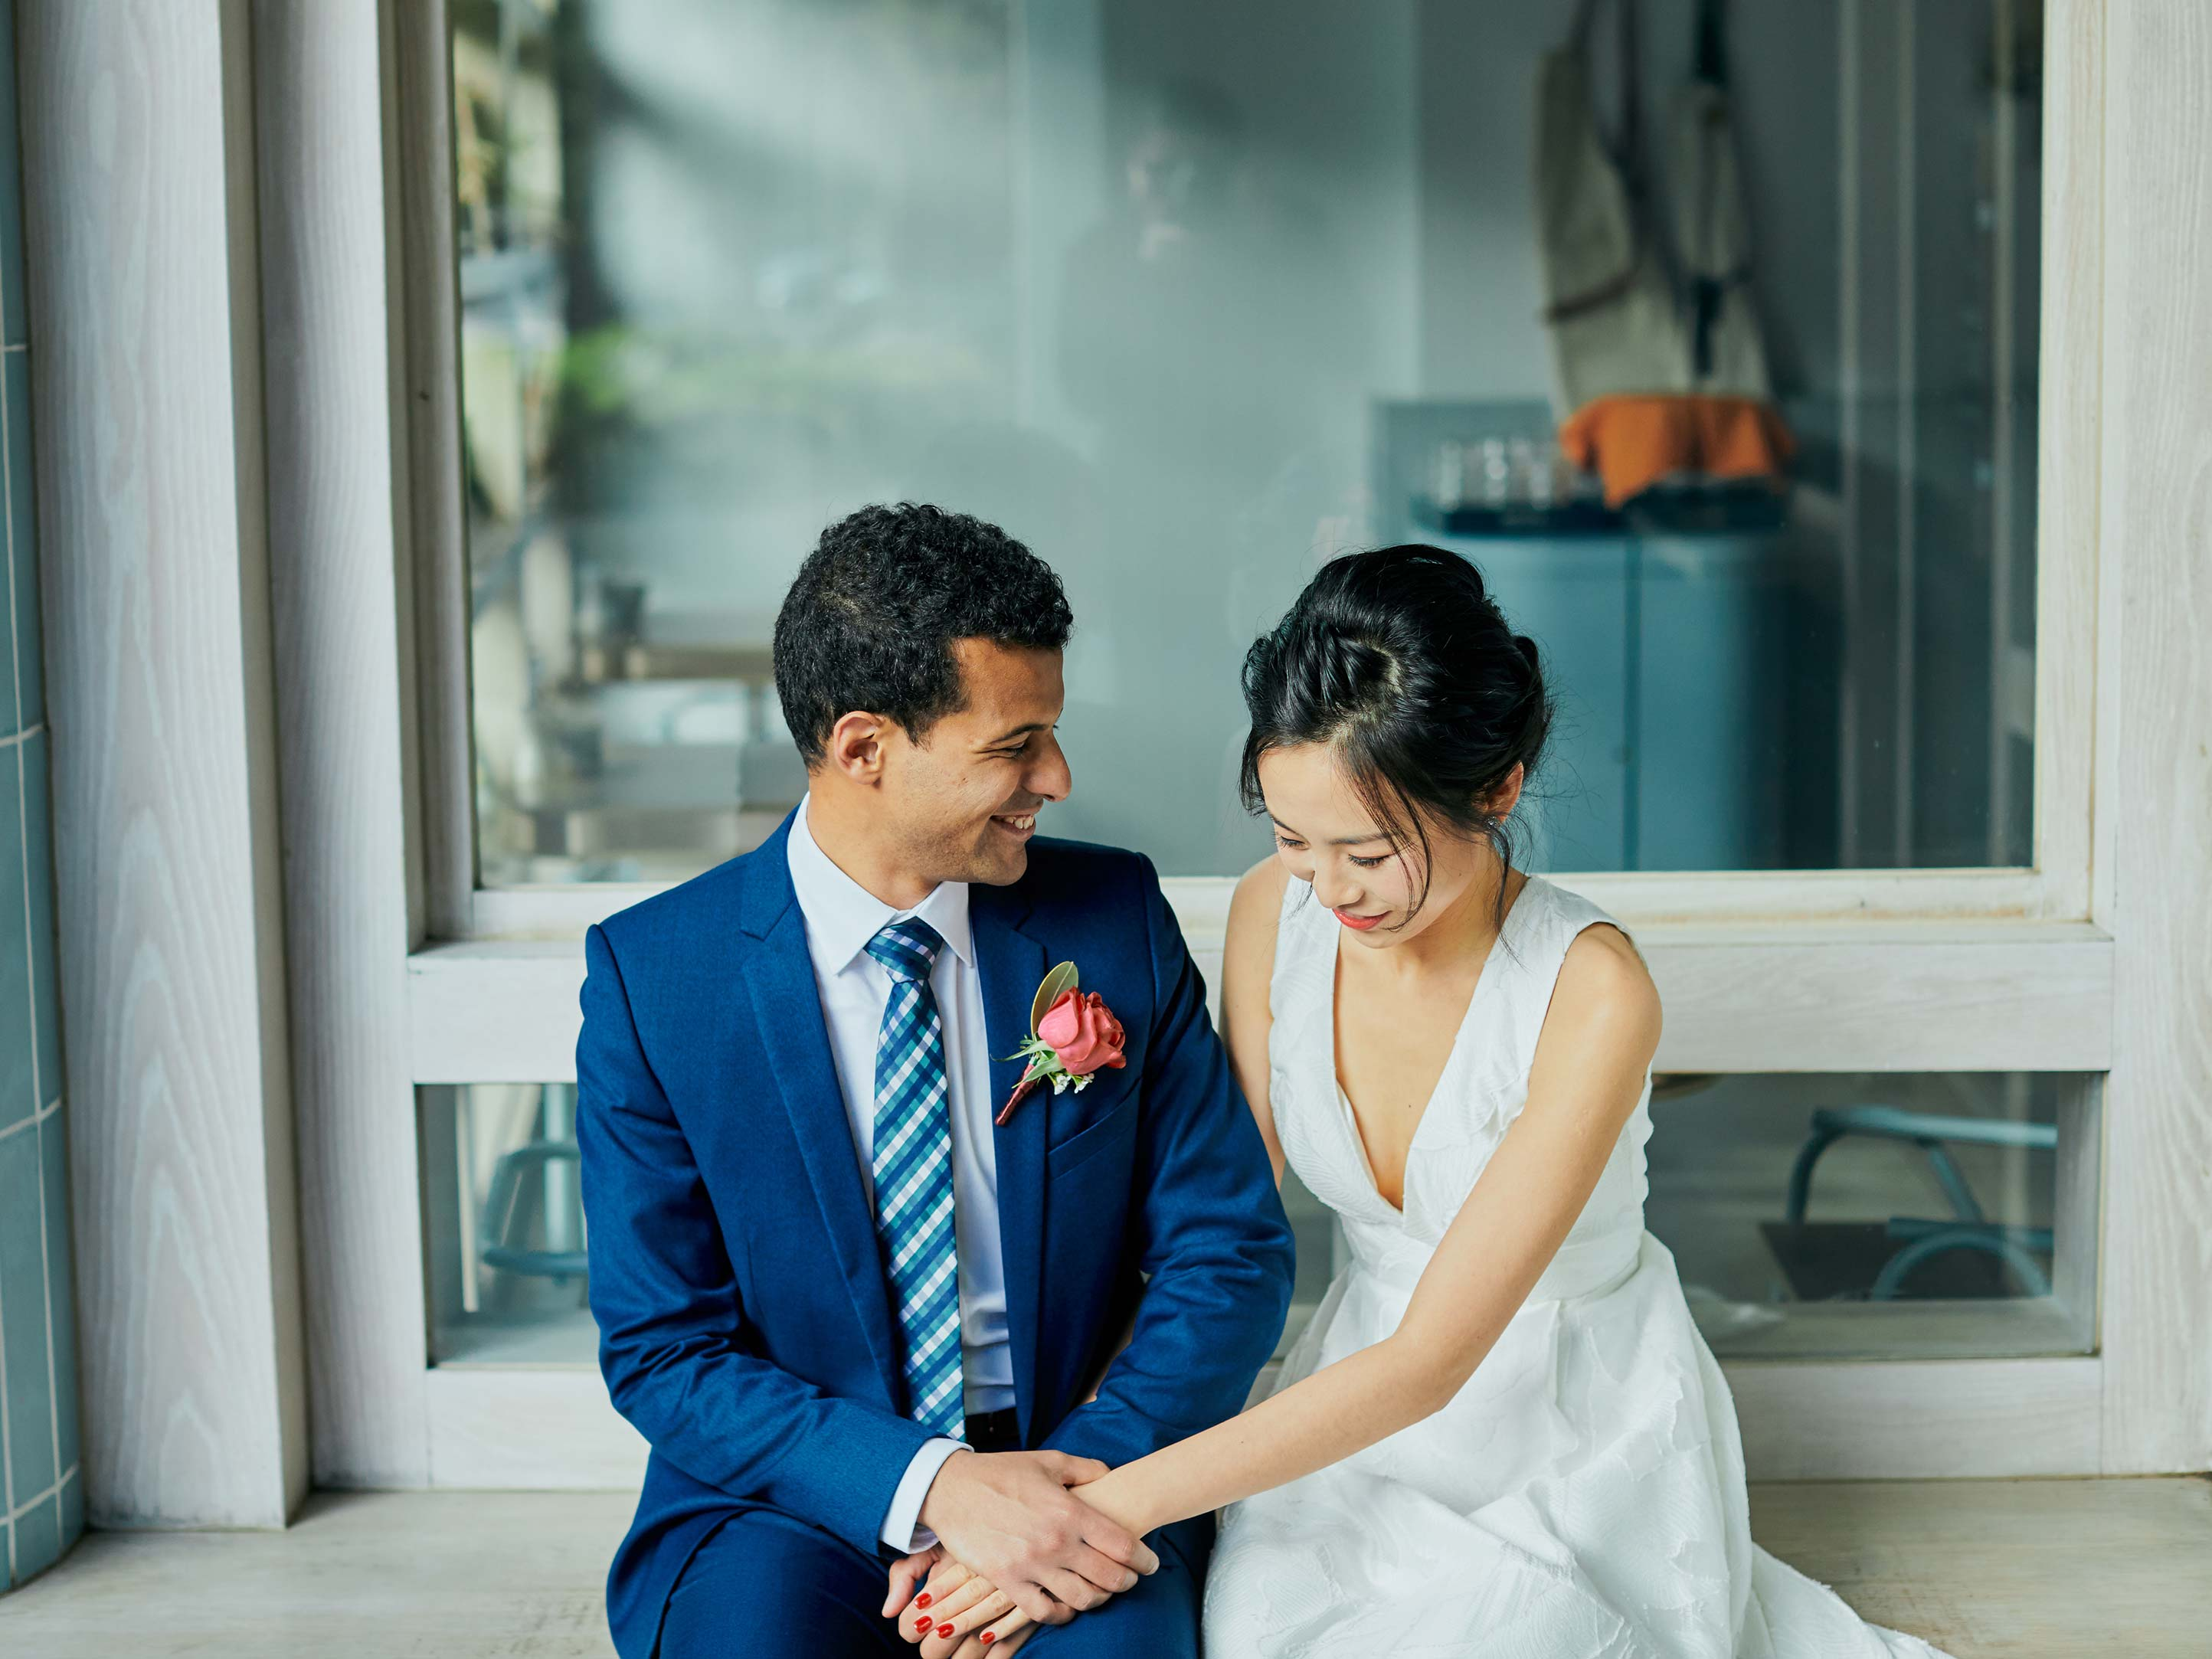 Melbourne-Wedding-Photographer-Kettle-Black-bride-groom-moment